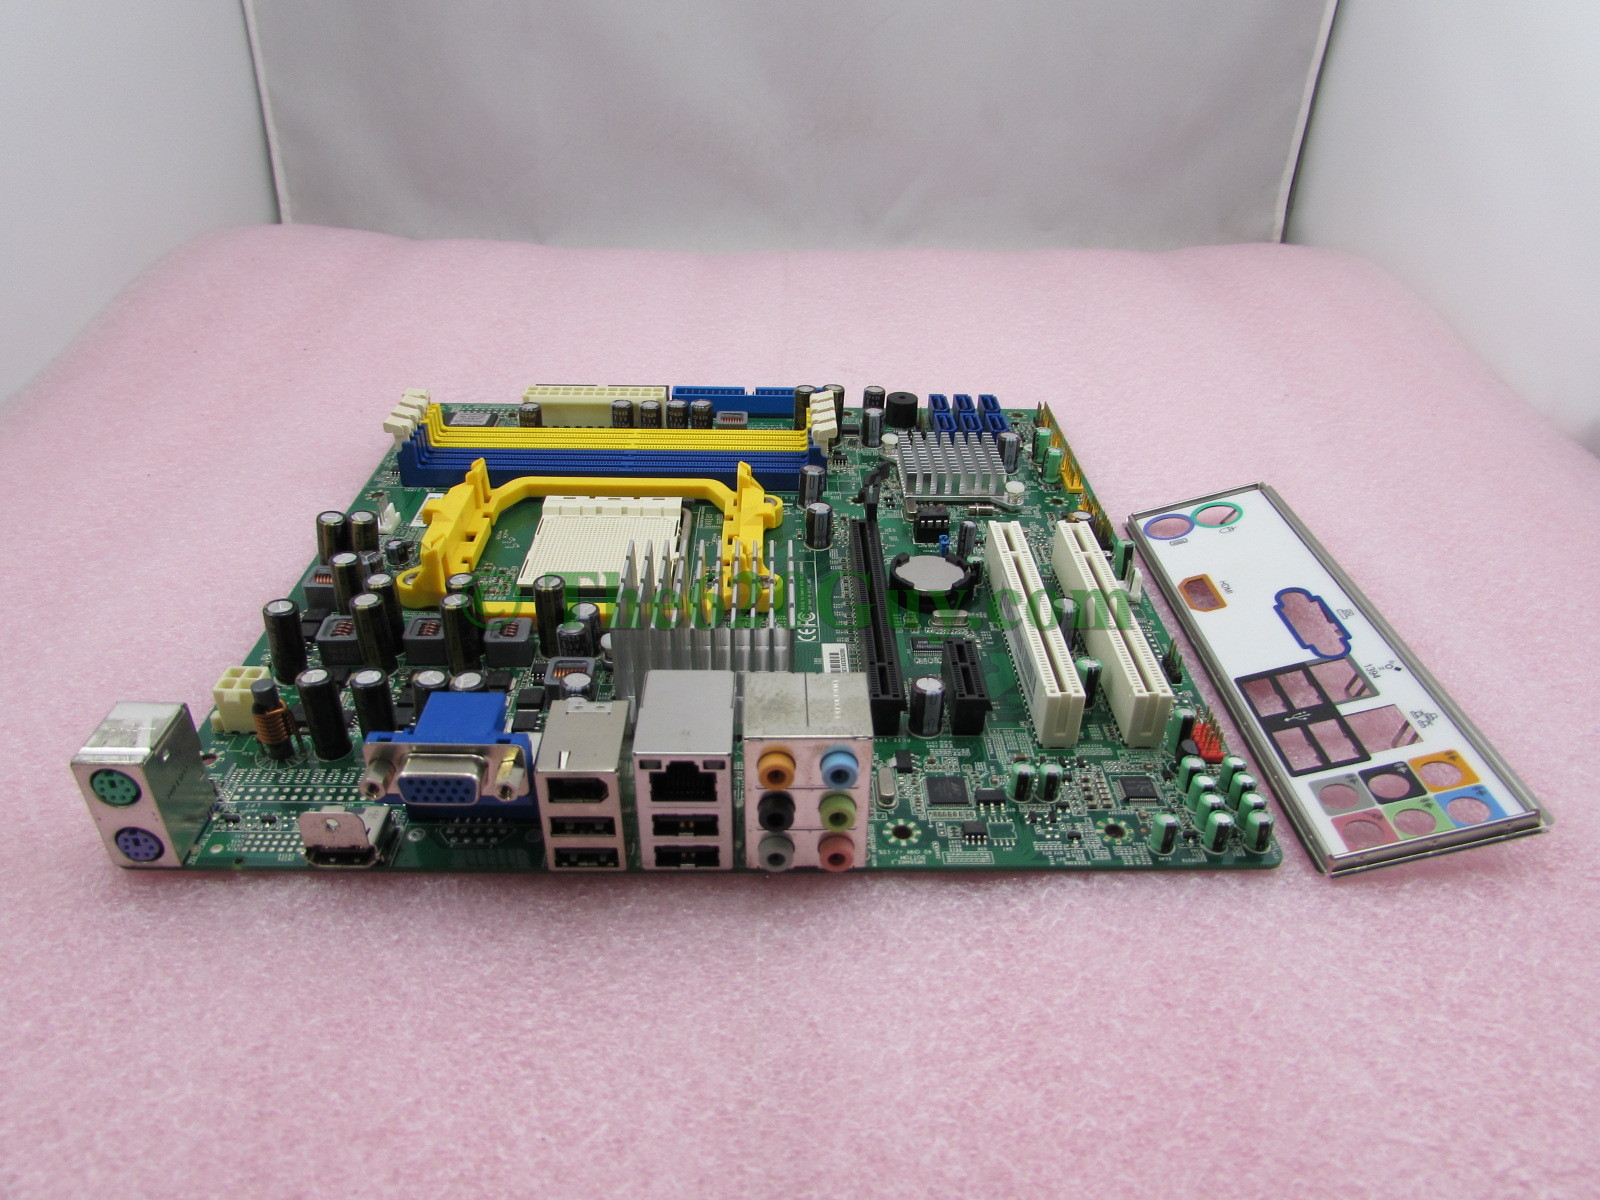 hight resolution of gateway dx4200 motherboard replacement forum more about replacing gateway dx motherboard gateway dx4200 ub001a specs cnet the number is aa 401